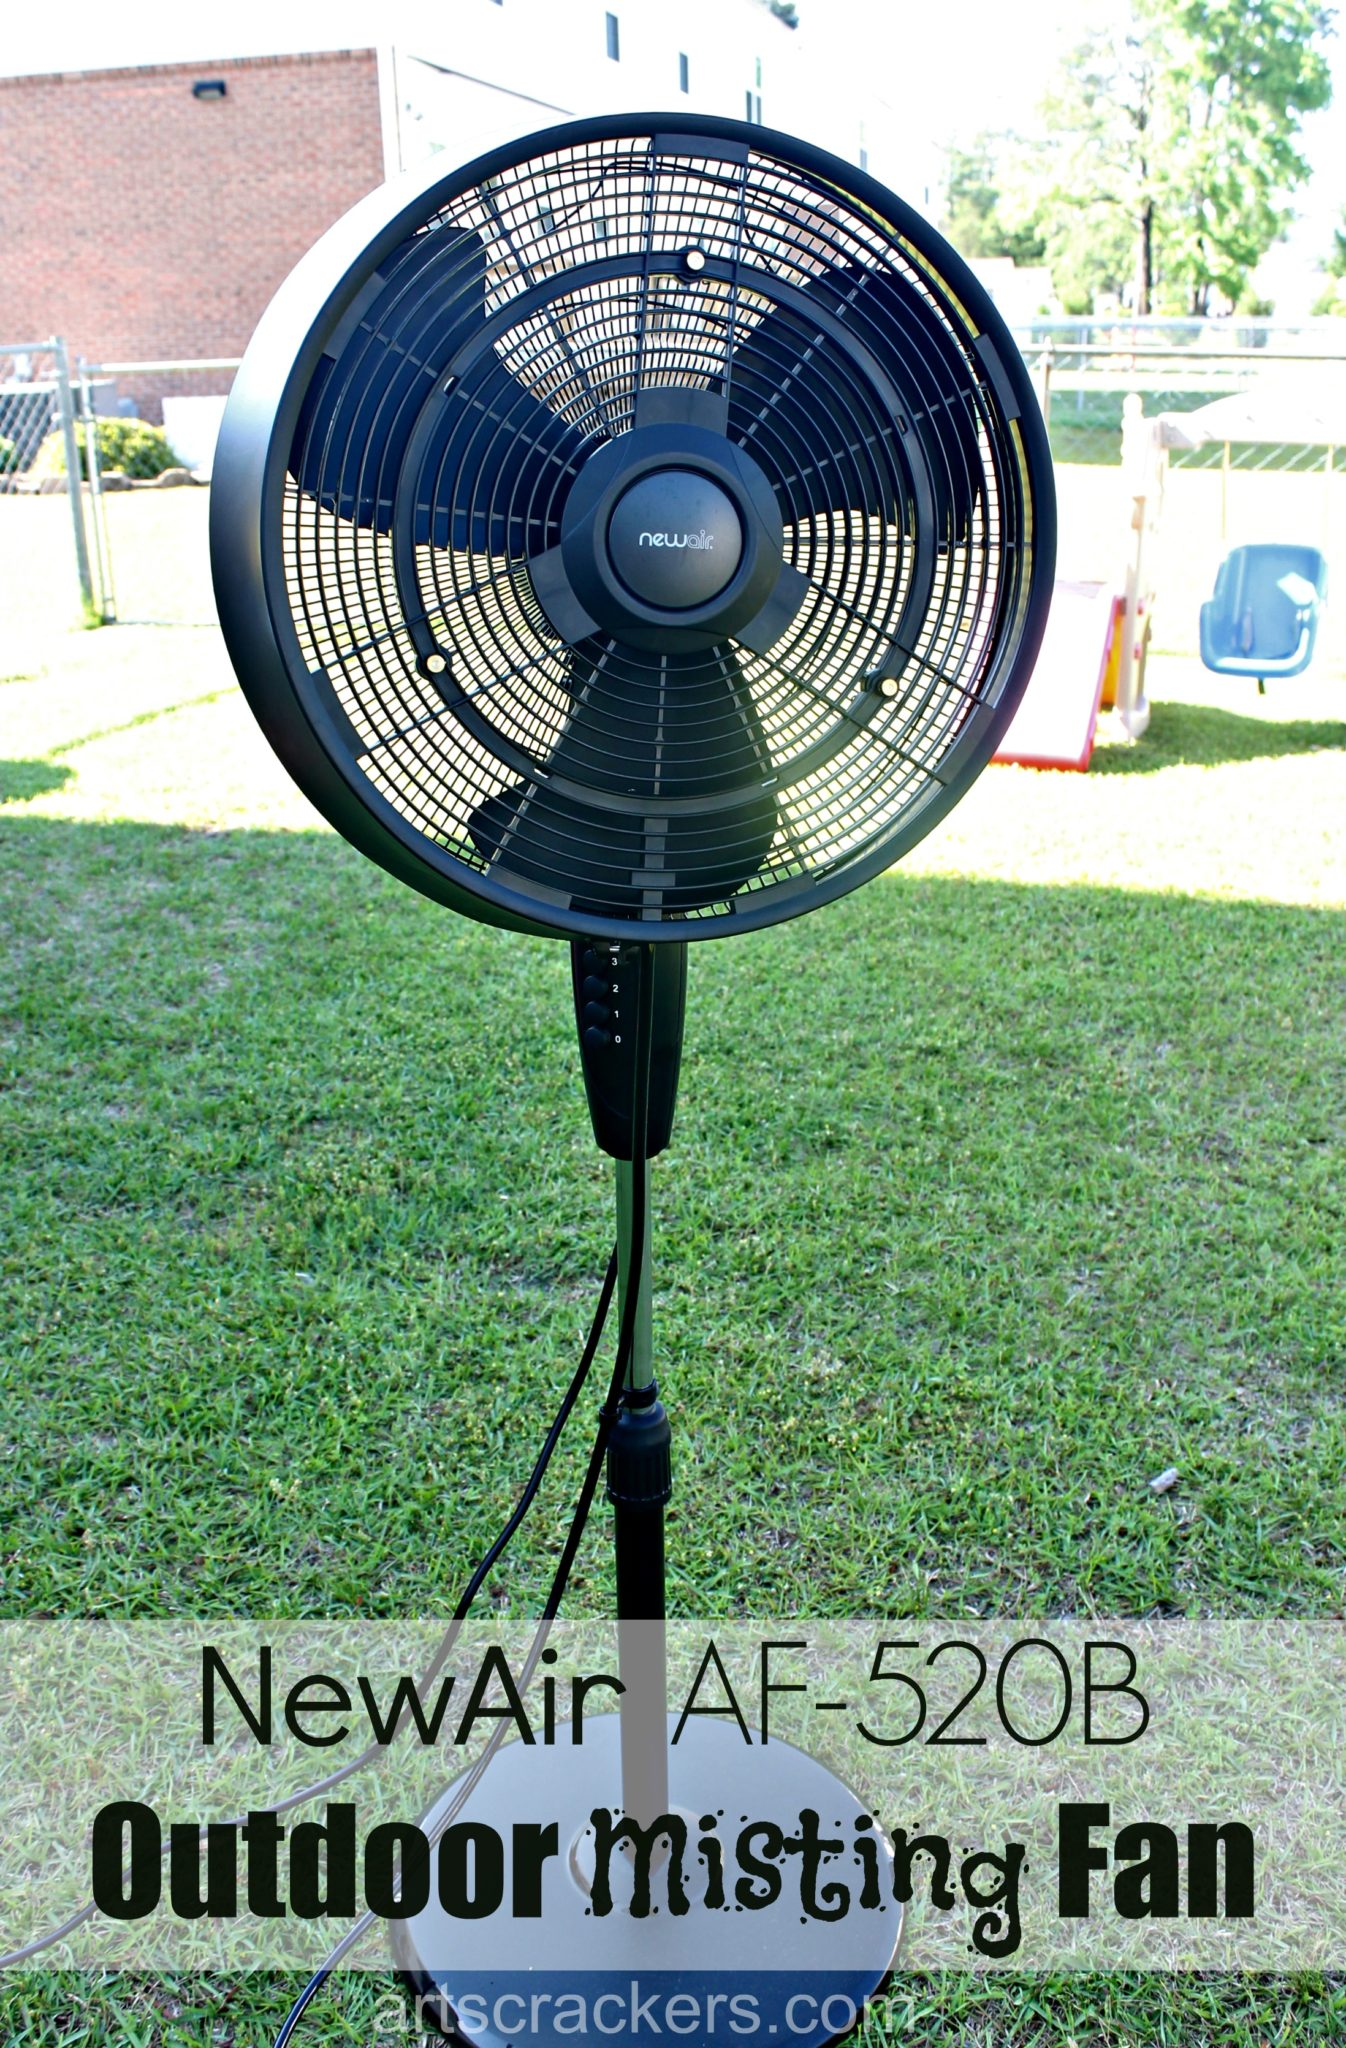 NewAir AF-520B Outdoor Misting Fan. Click the picture to read the review.